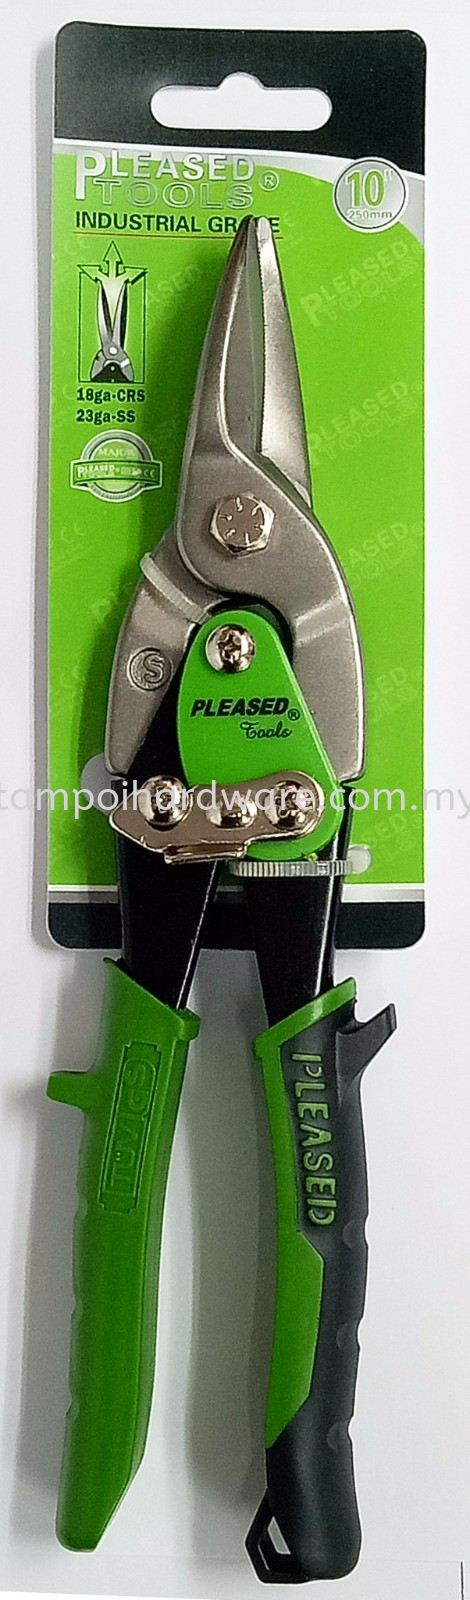 Pleased Brand Tin Snip Cutter 250mm Pliers Hand Tools